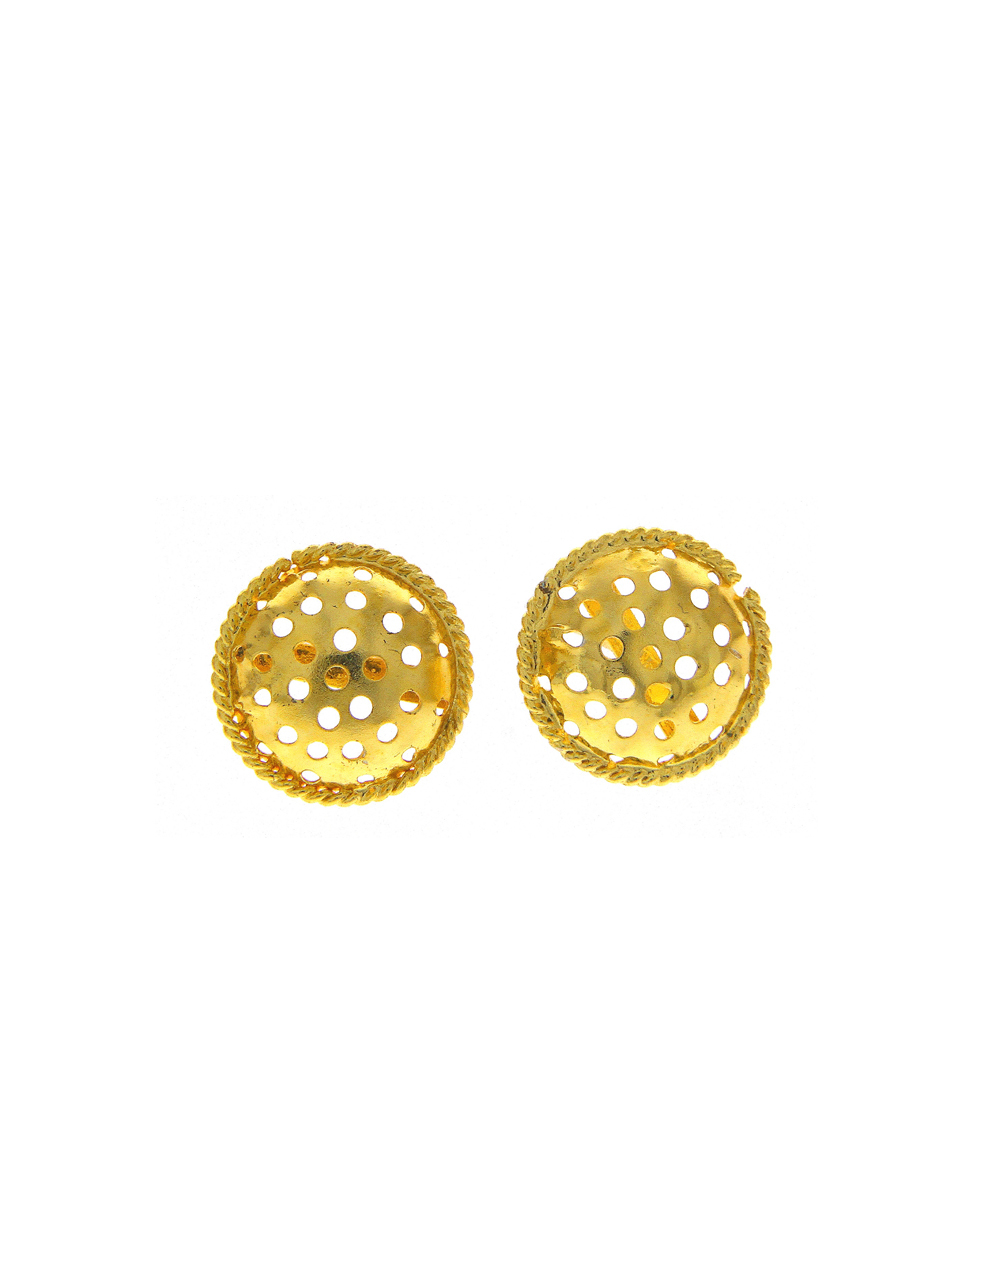 Gold Tone Ear Tops Base